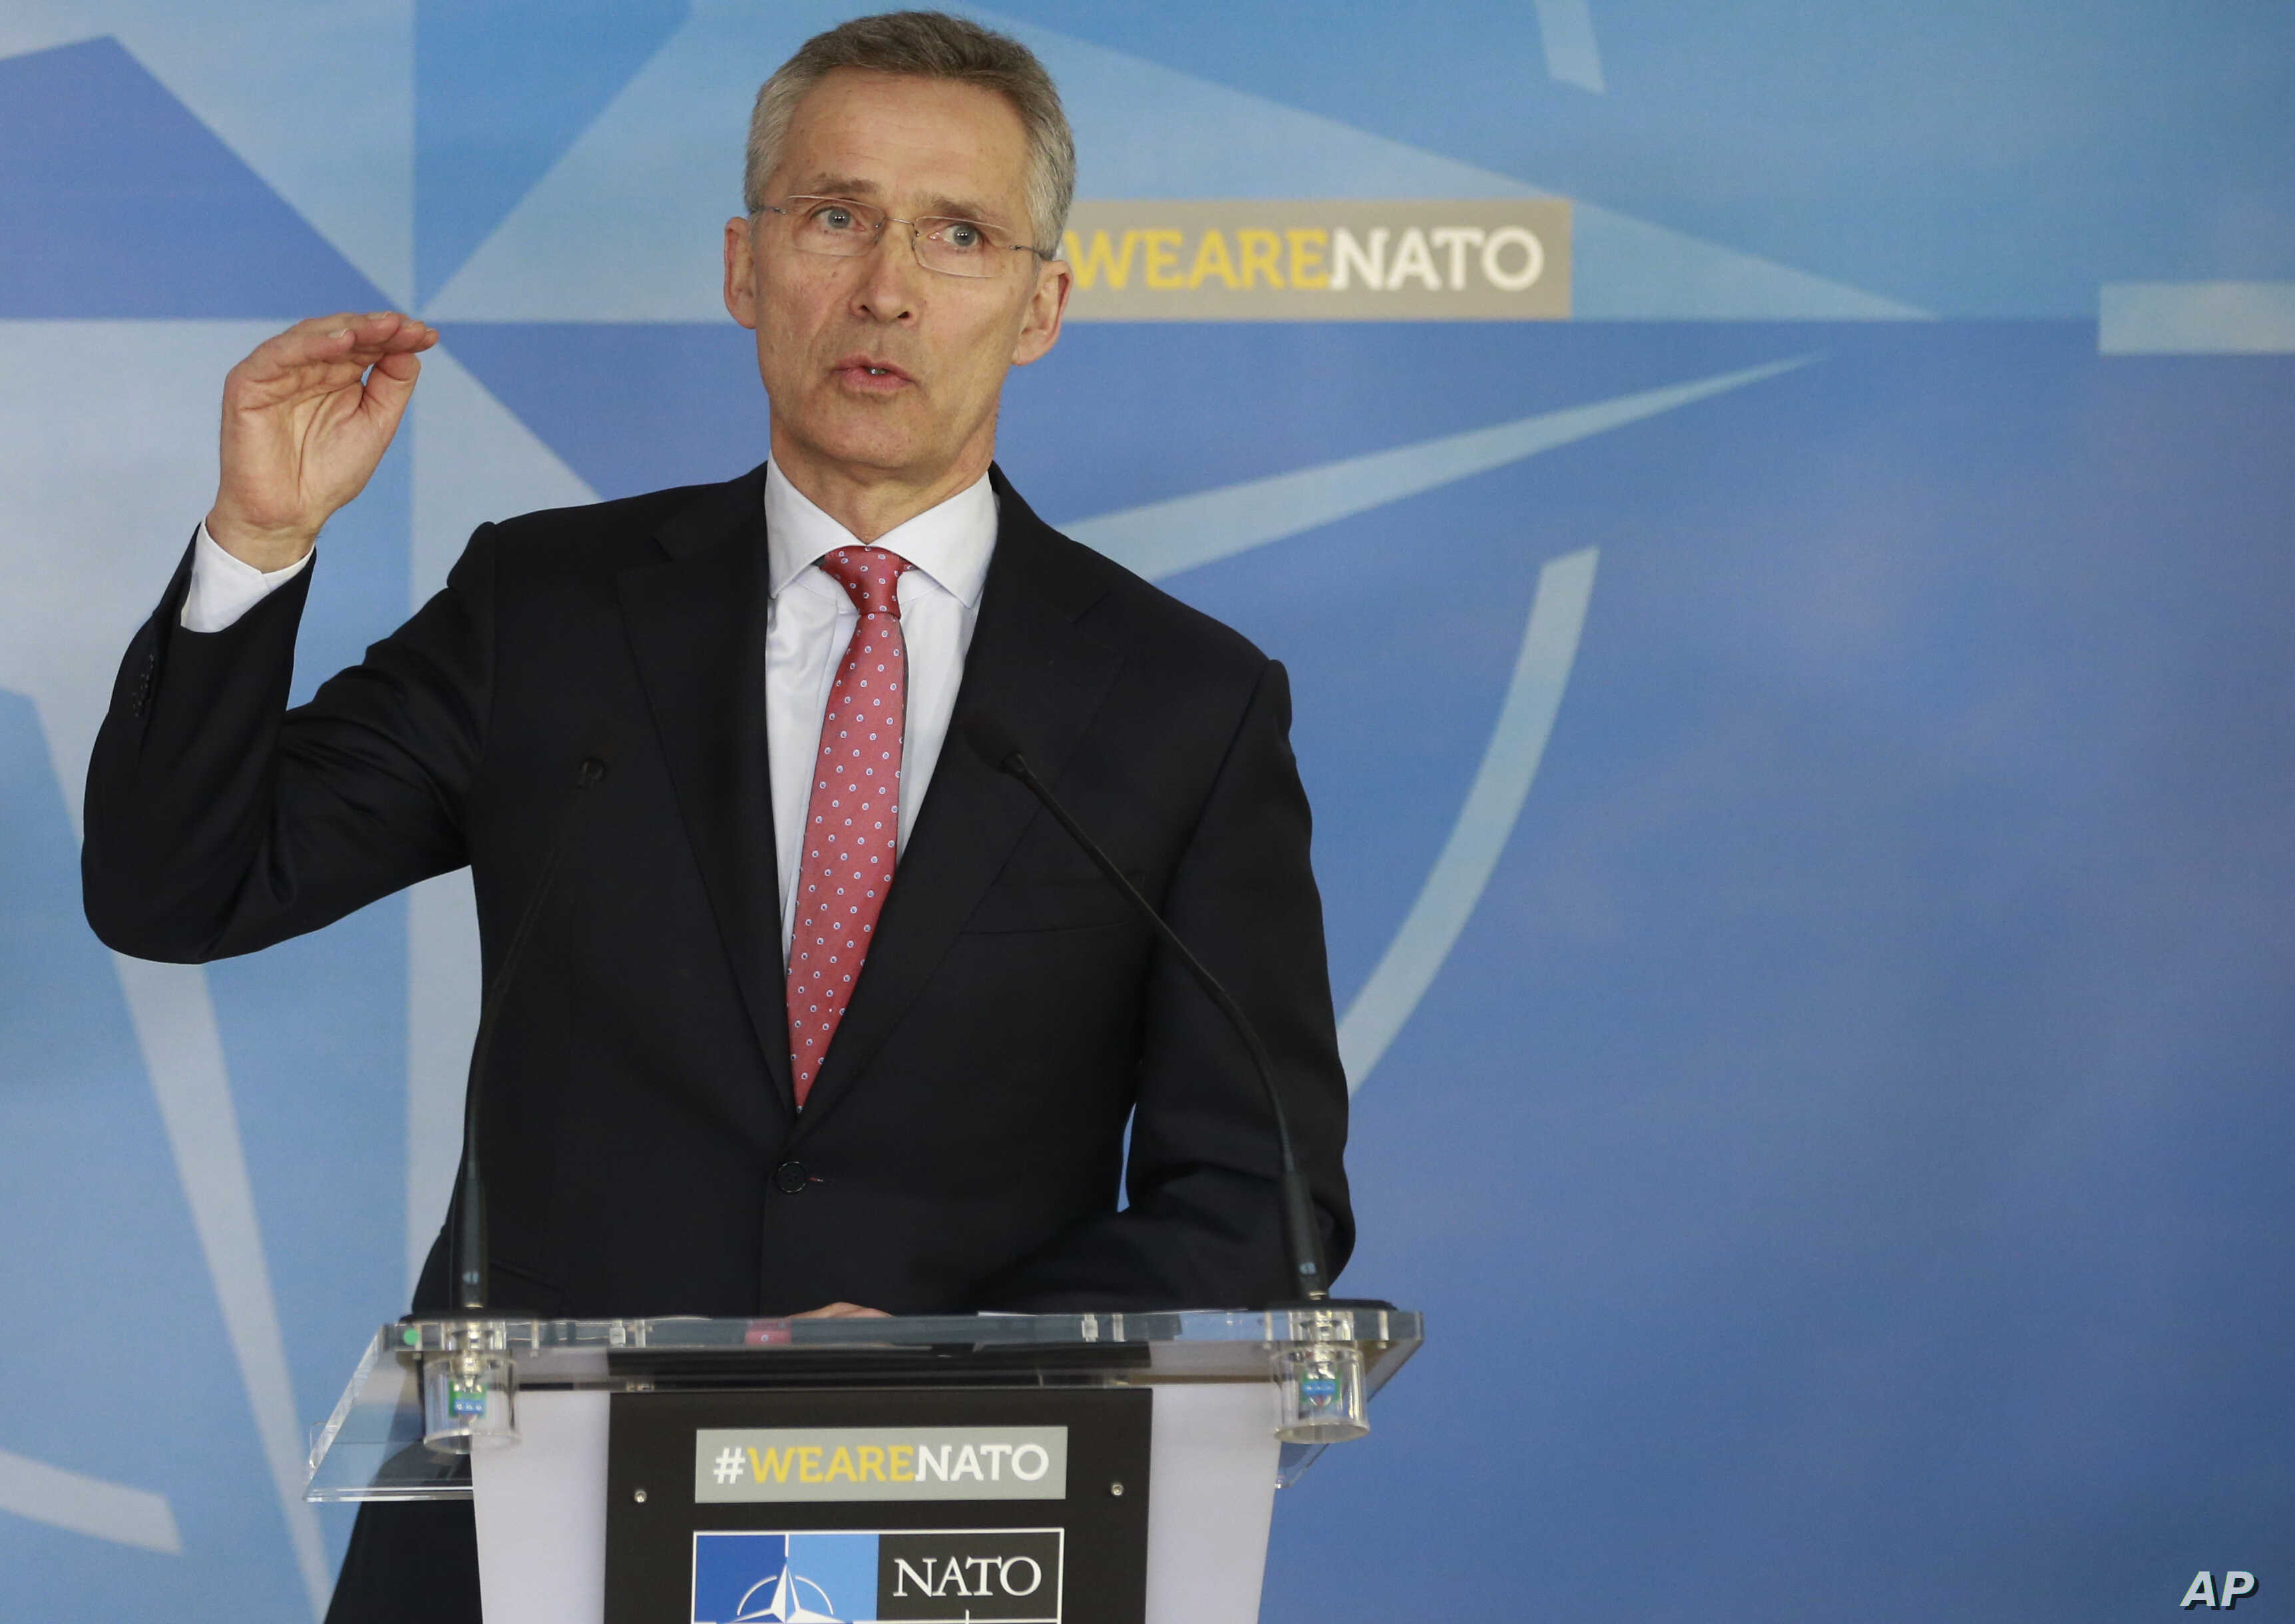 NATO Secretary General Jens Stoltenberg speaks during a media conference at NATO headquarters in Brussels on March 27, 2018.